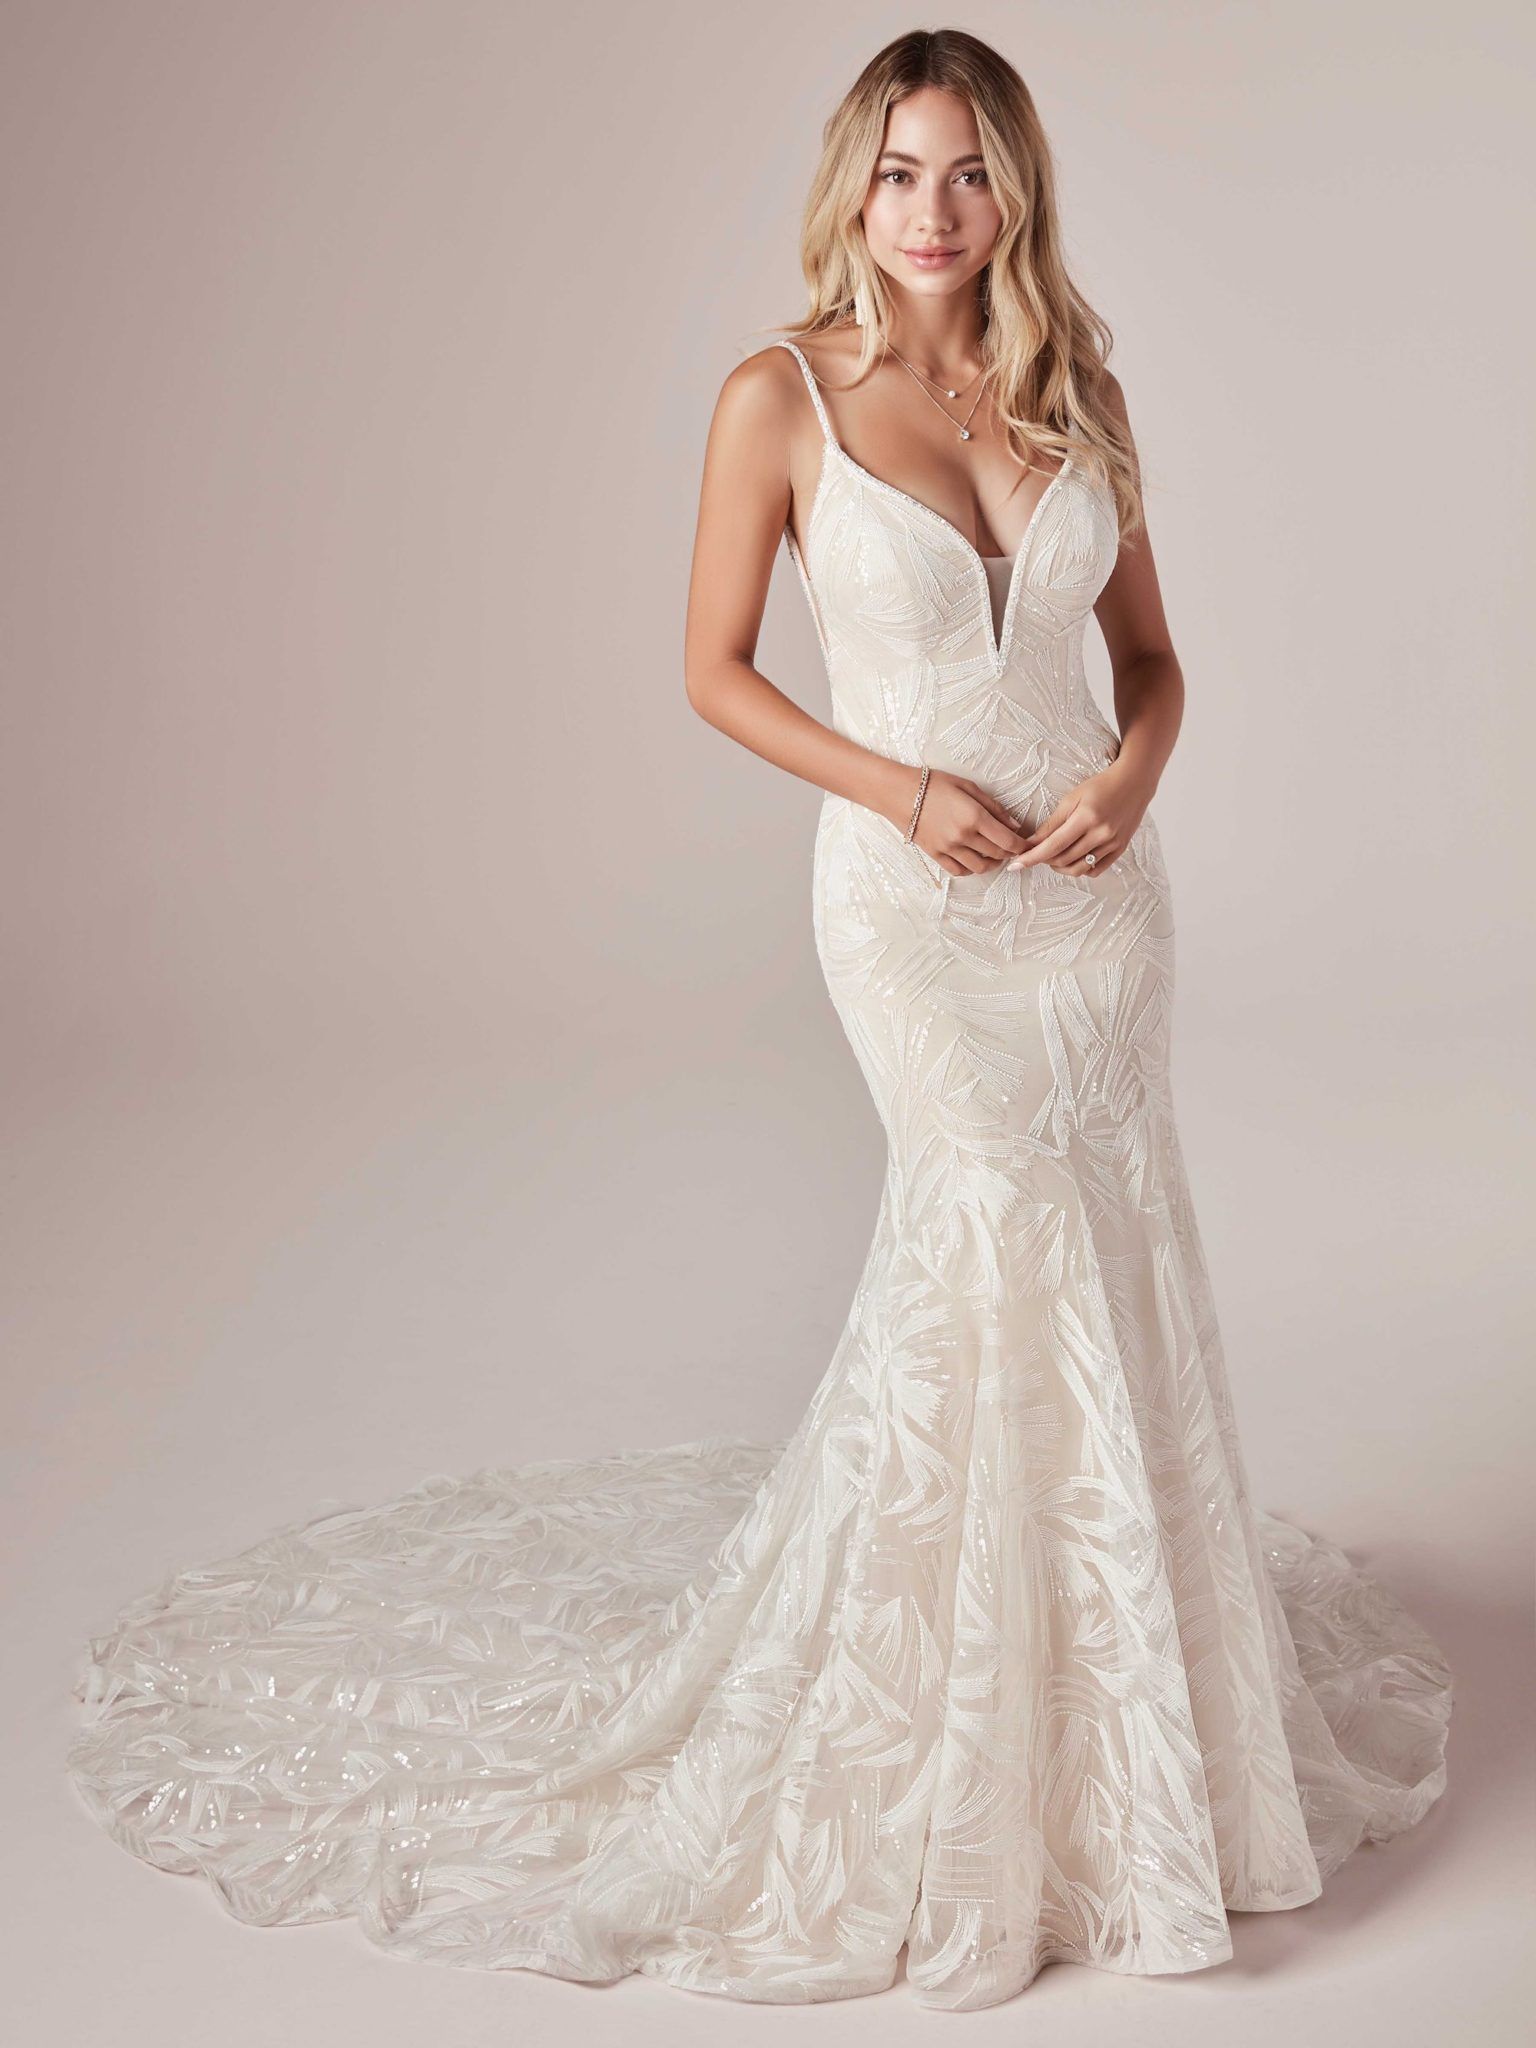 A woman wears the Elsie by Maggie Sottero